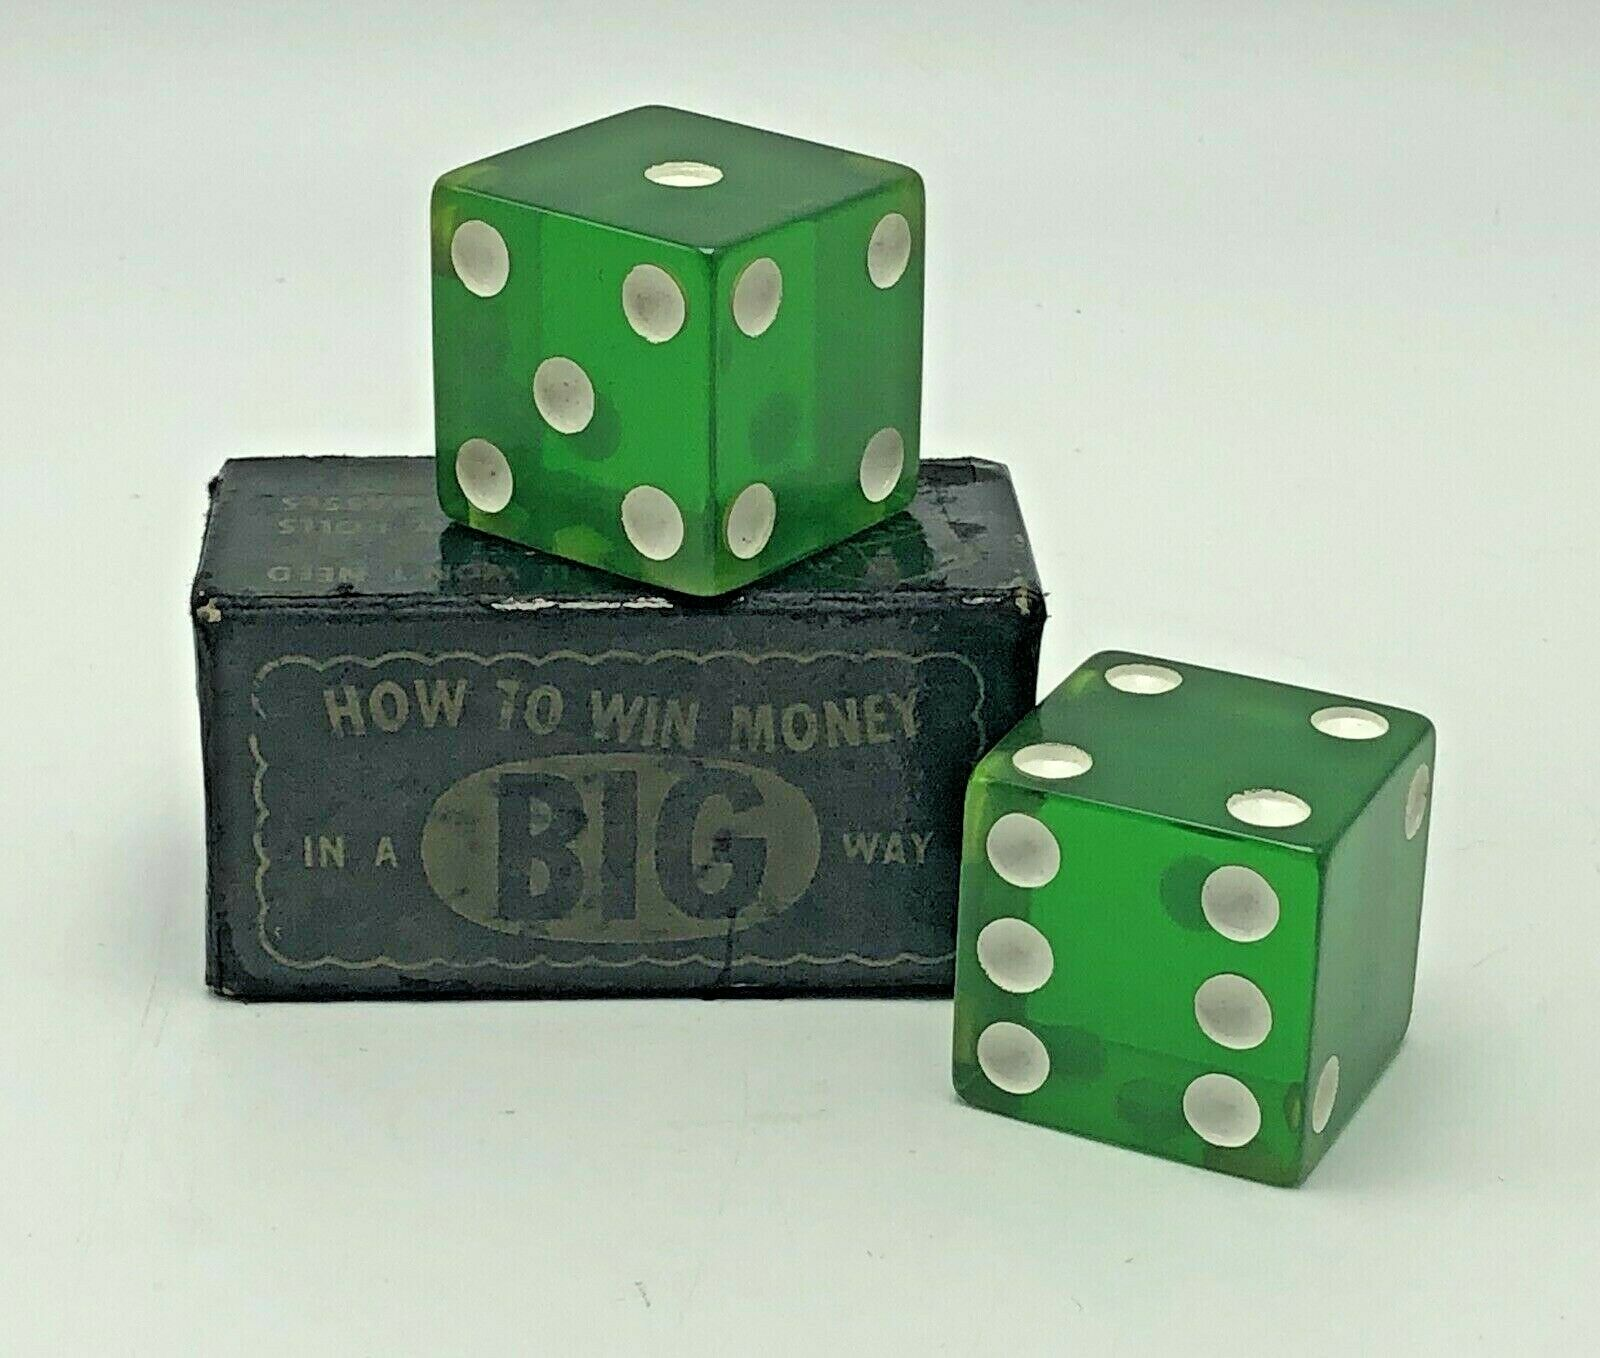 Vintage 1.5 inch Green Big Boy Dice Large Pair Original Box E.S. Lowe USA Lucite